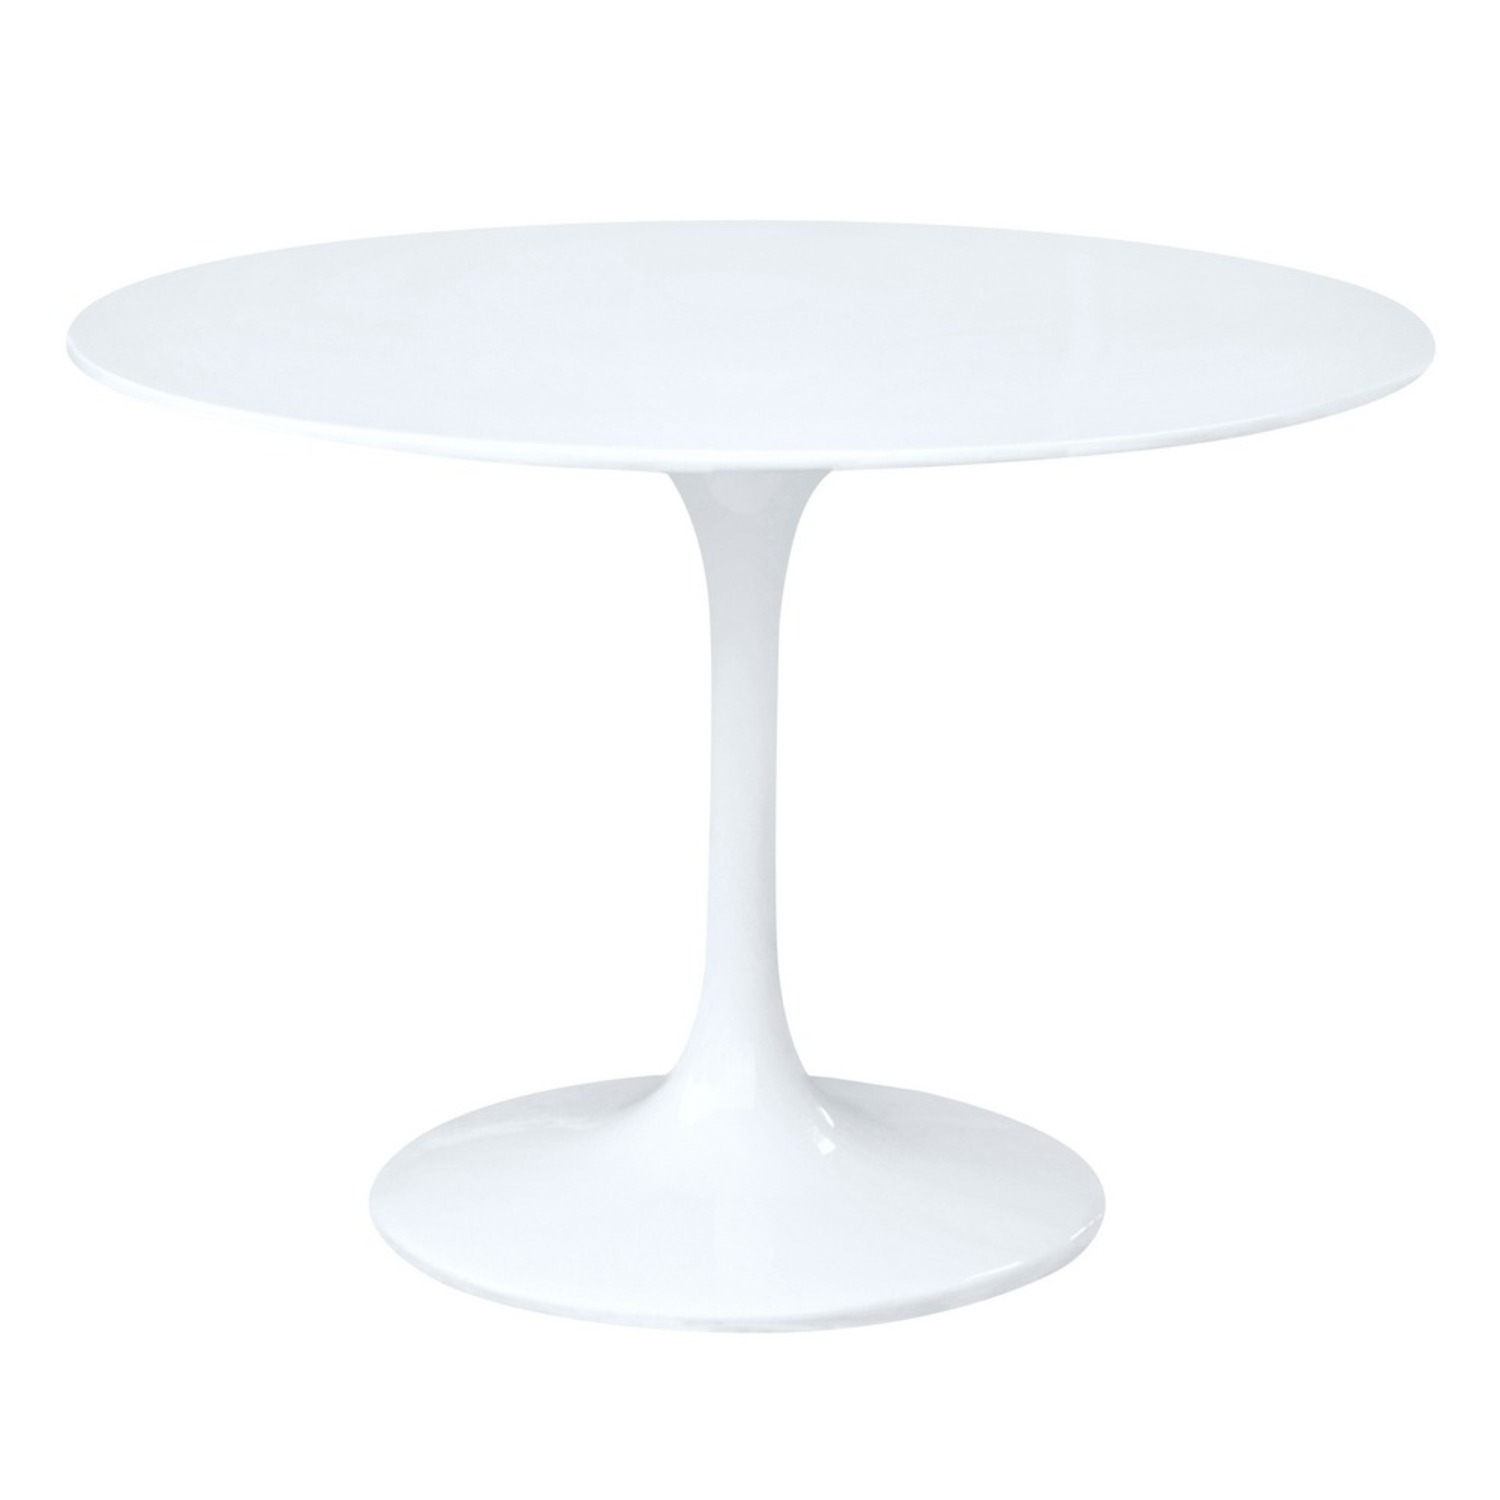 48-Inch Dining Table Molded In White Fiberglass - image-0